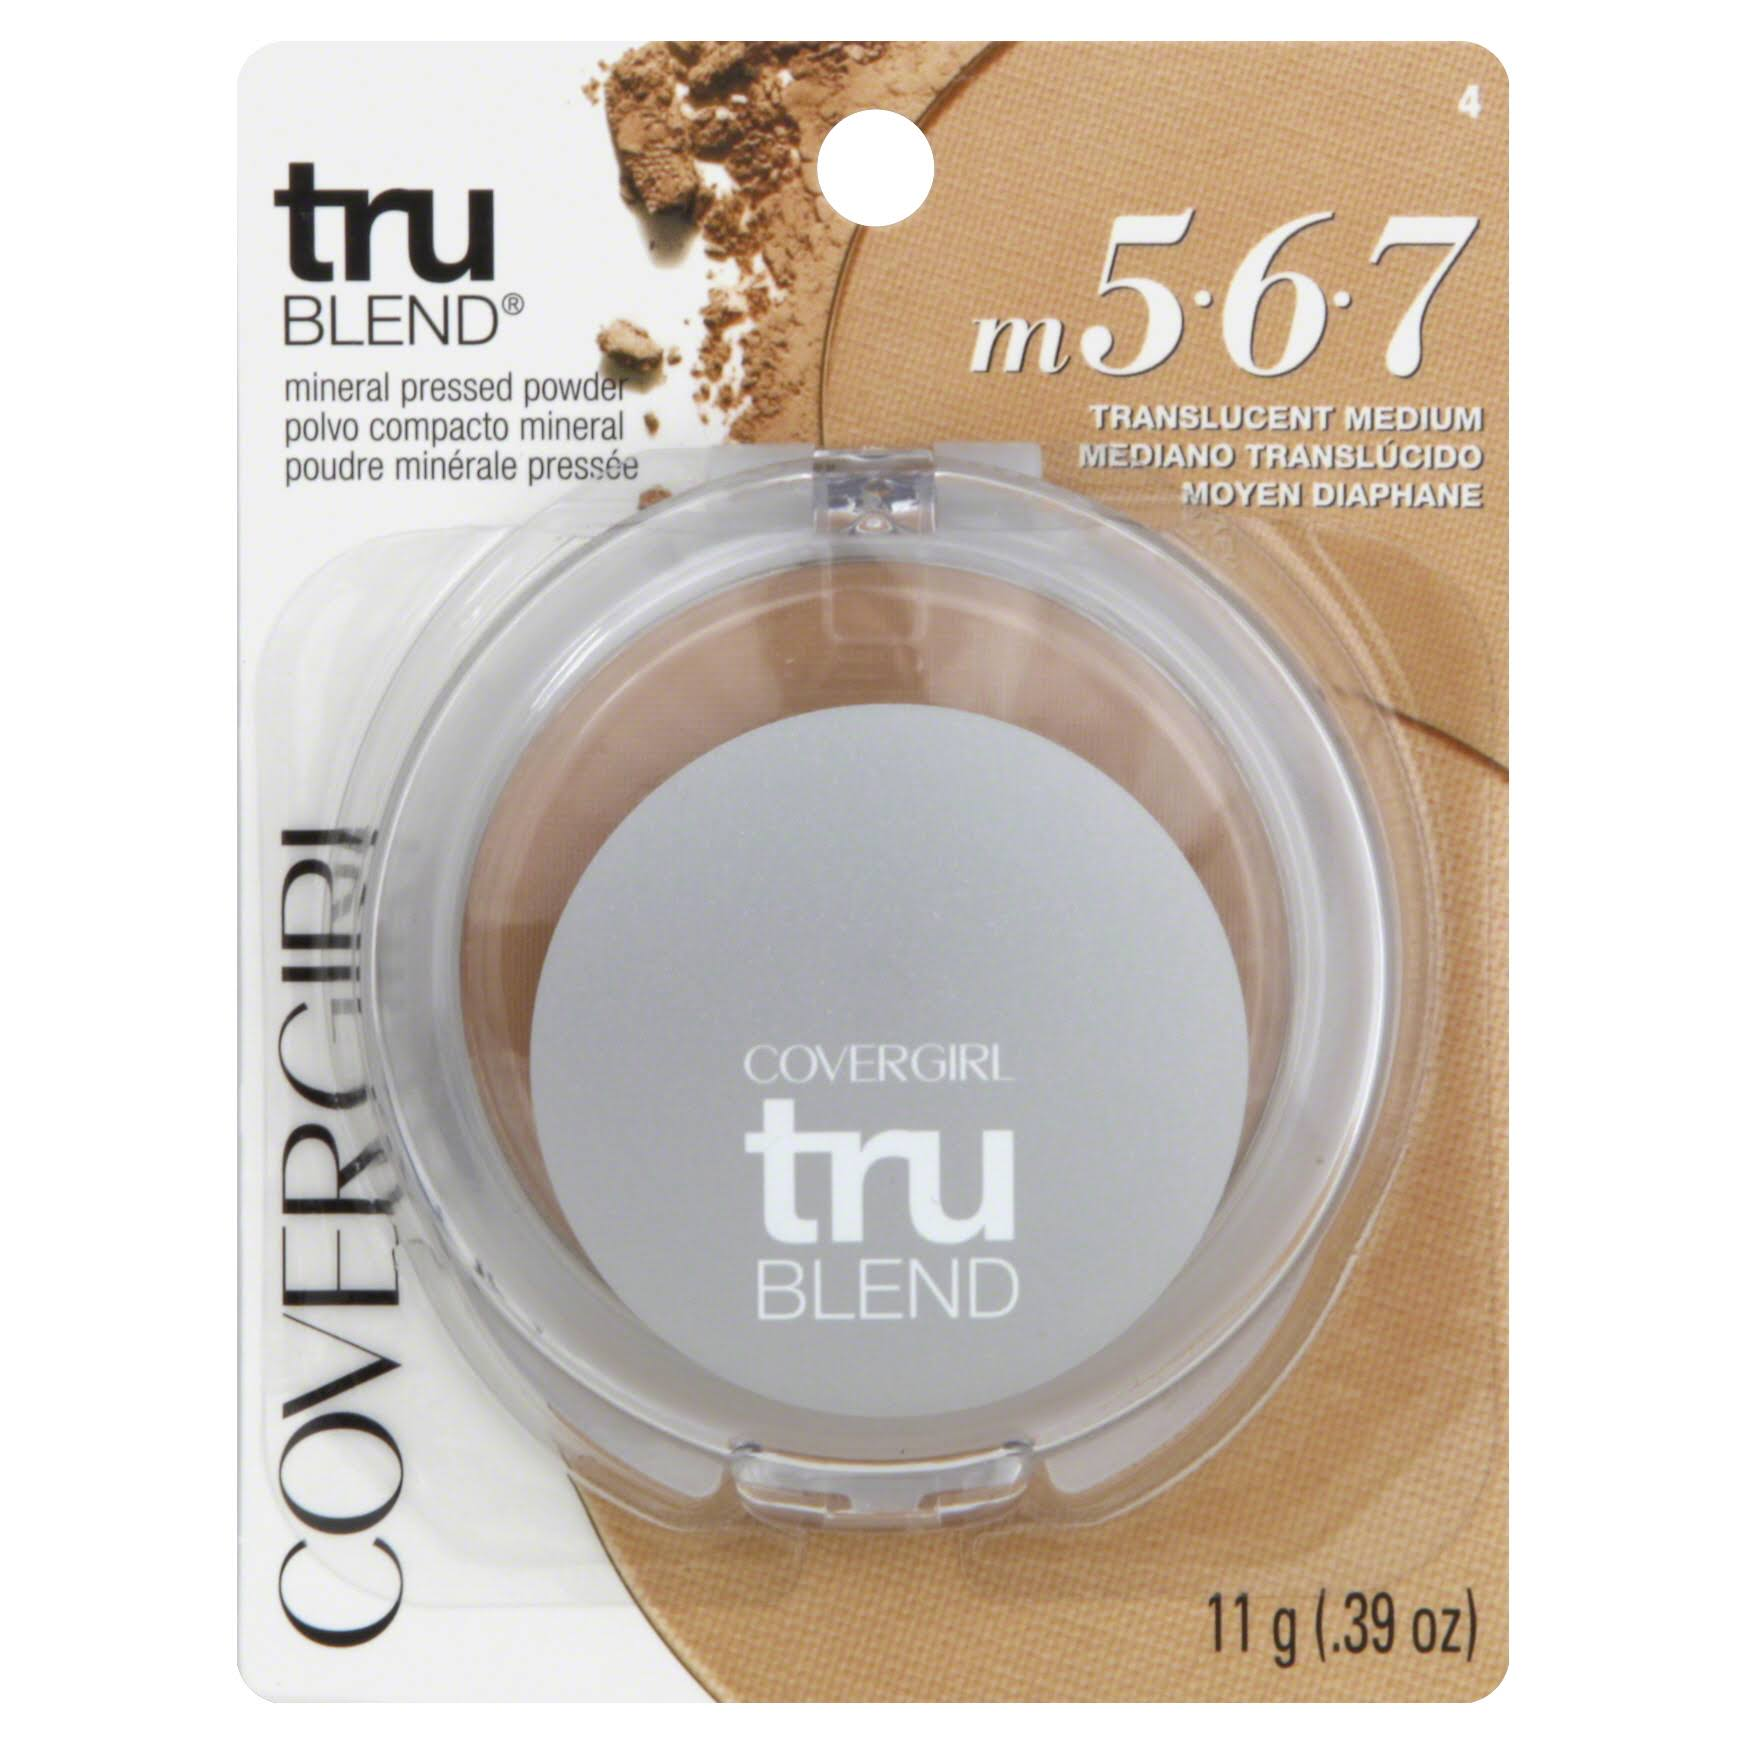 Covergirl Trublend Pressed Powder - 4 Translucent Medium, 11 g